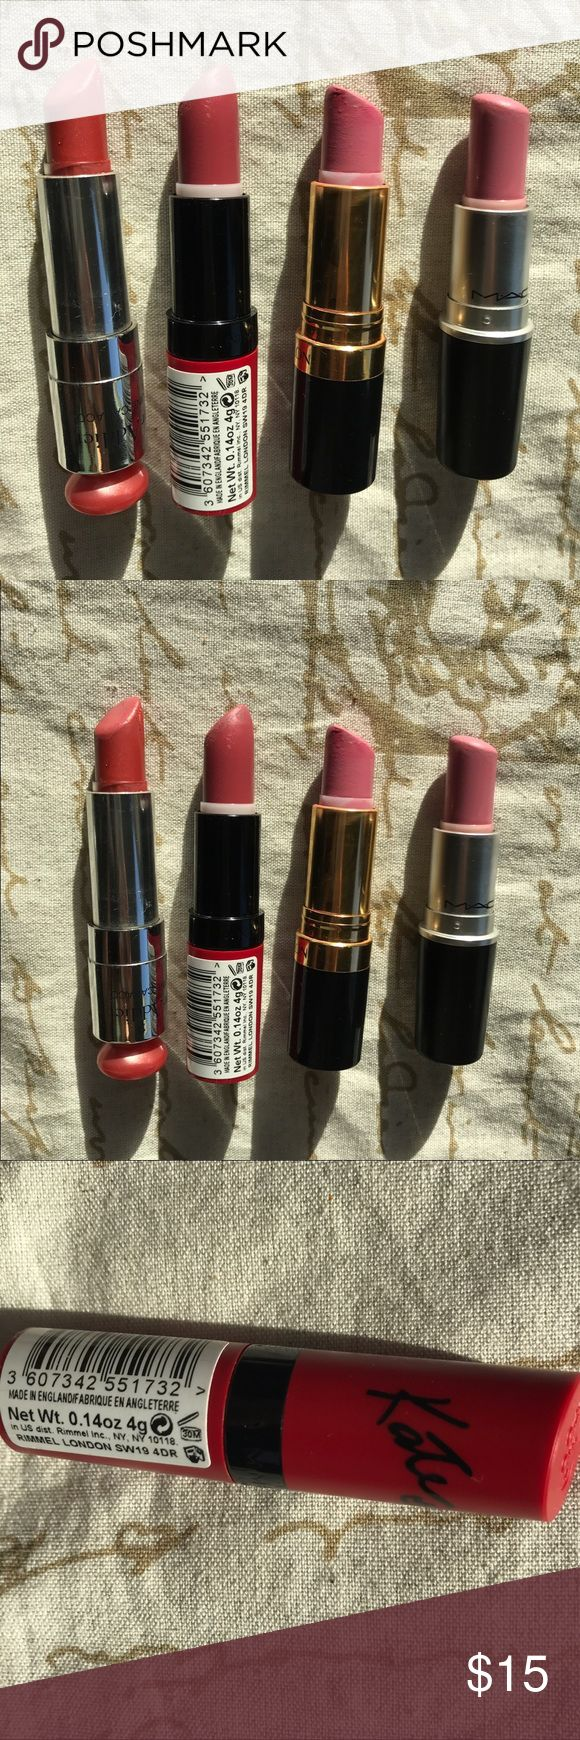 Makeup bundle coral & pink lippies MAC Dior Kate The lipsticks shown are twisted to the fullest so you can see how much exactly are left in the products. You will get (from left to right) Auth Dior addict sanguine caraco 659, Kate in Rossetto 104, Revlon 668 primrose and MAC A64 Snob MAC Cosmetics Makeup Lipstick